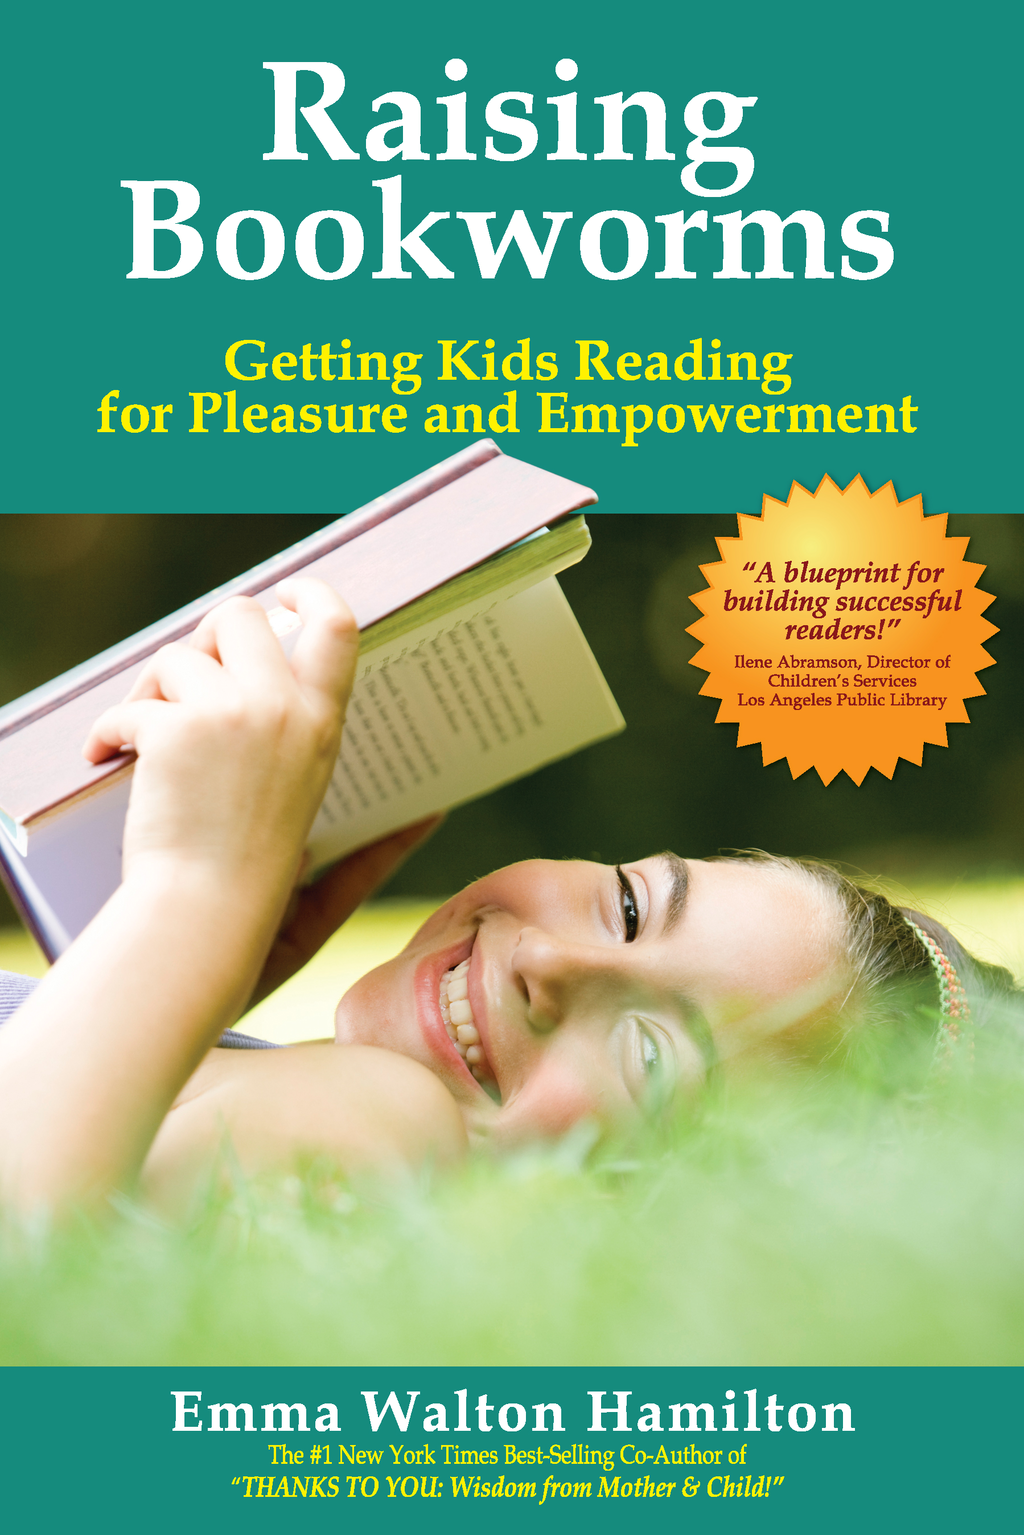 Raising Bookworms: Getting Kids Reading for Pleasure and Empowerment By: Emma Walton Hamilton